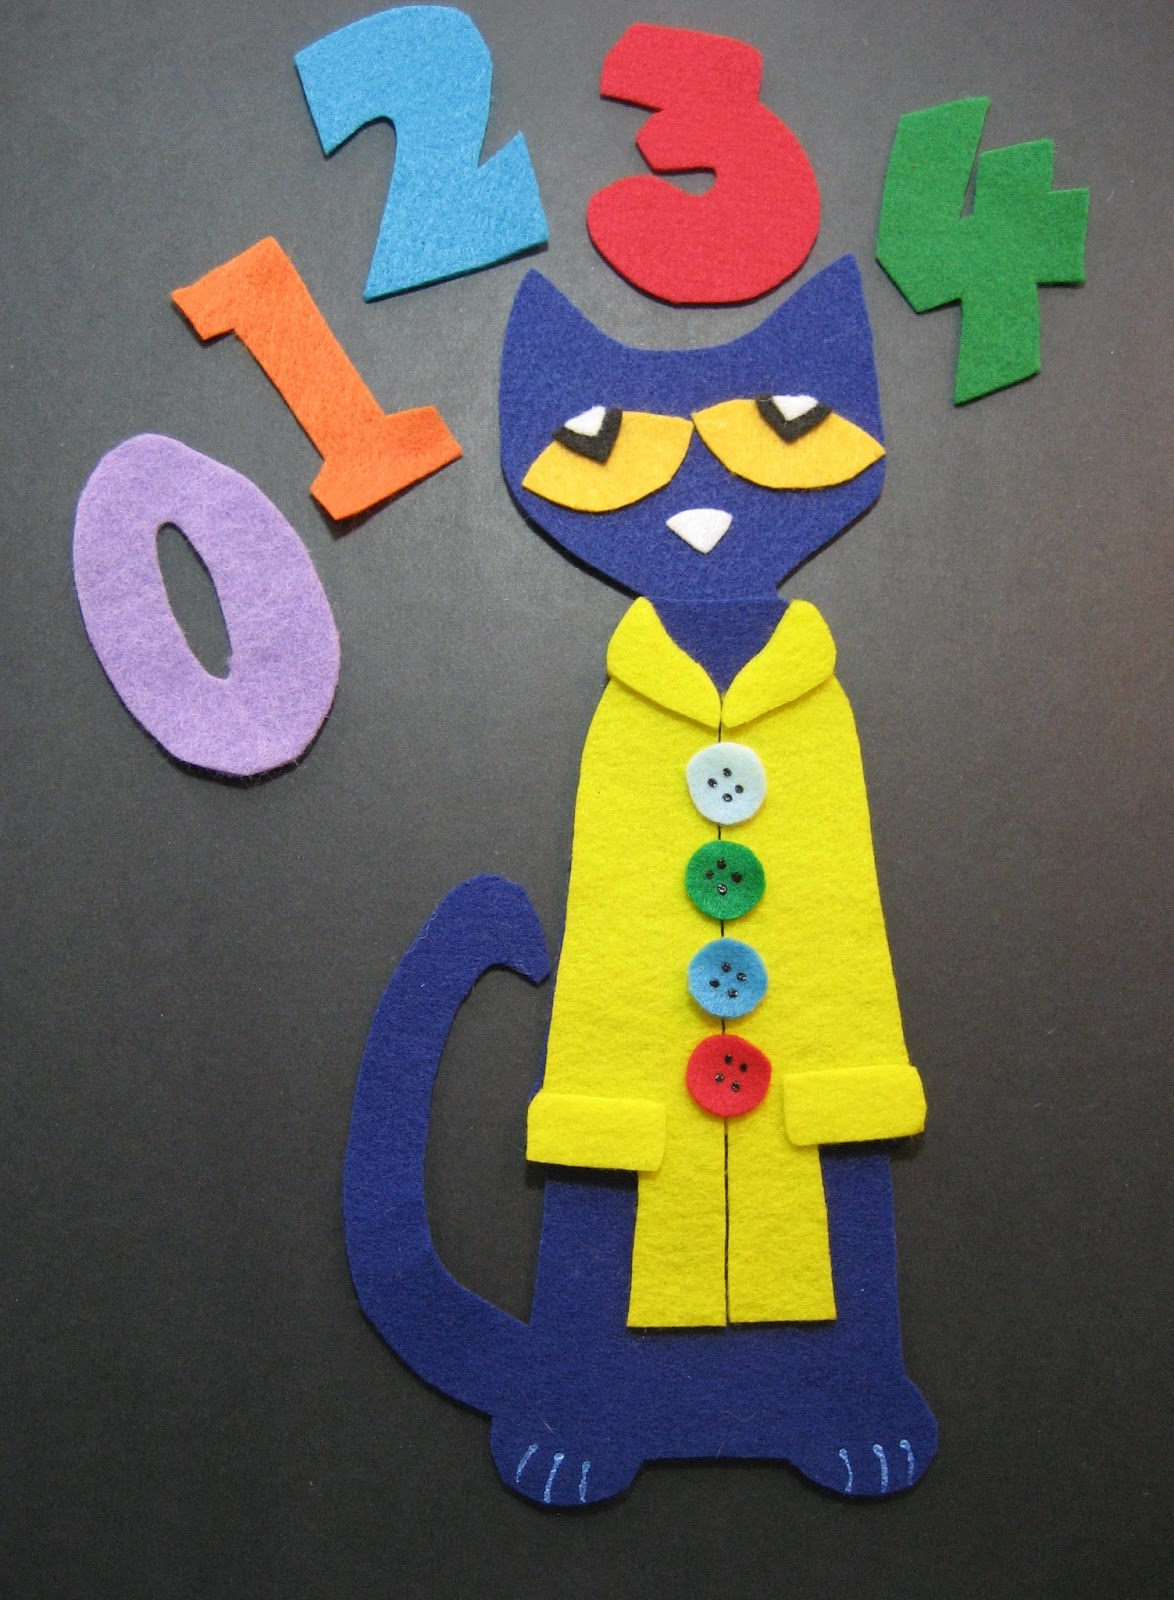 Flannel Board Fun Pete The Cat S 4 Groovy Buttons